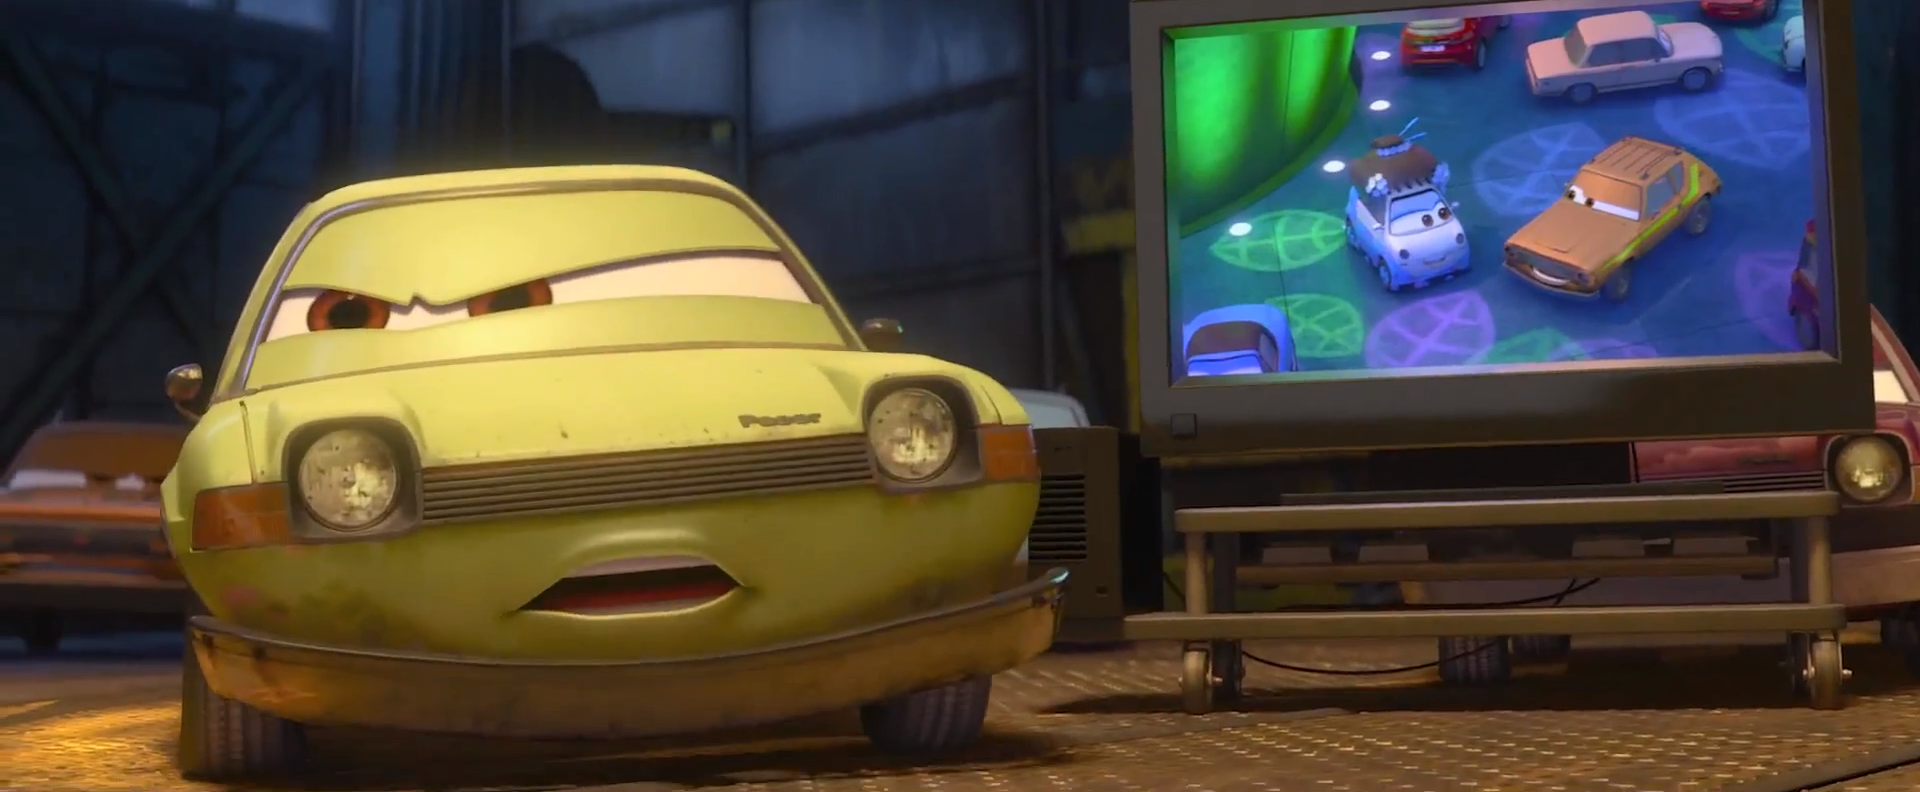 Cars 2 images